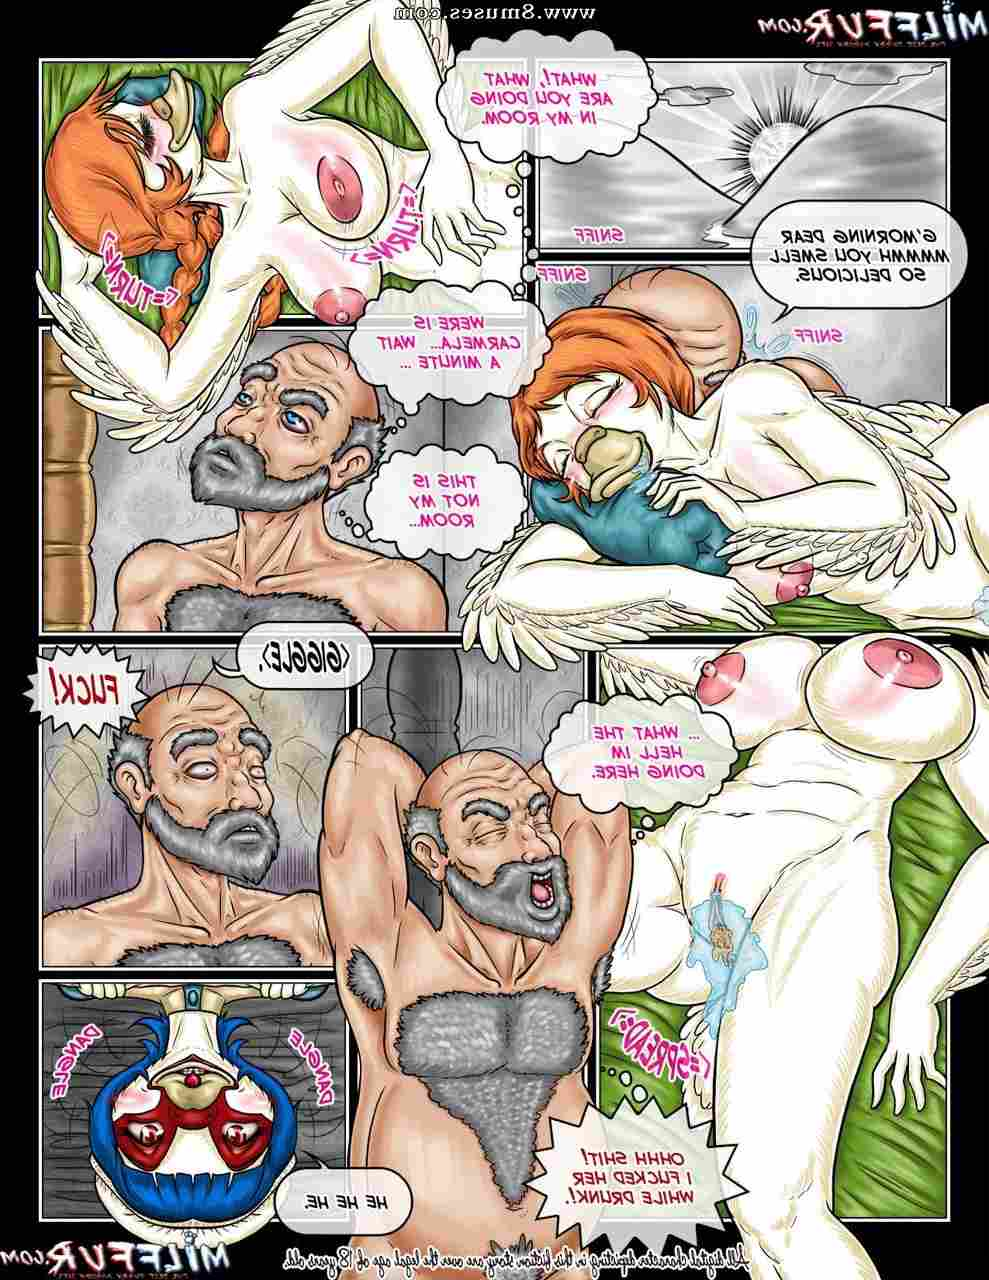 Milffur-Comics/Wild-Wild-West Wild_Wild_West__8muses_-_Sex_and_Porn_Comics_27.jpg